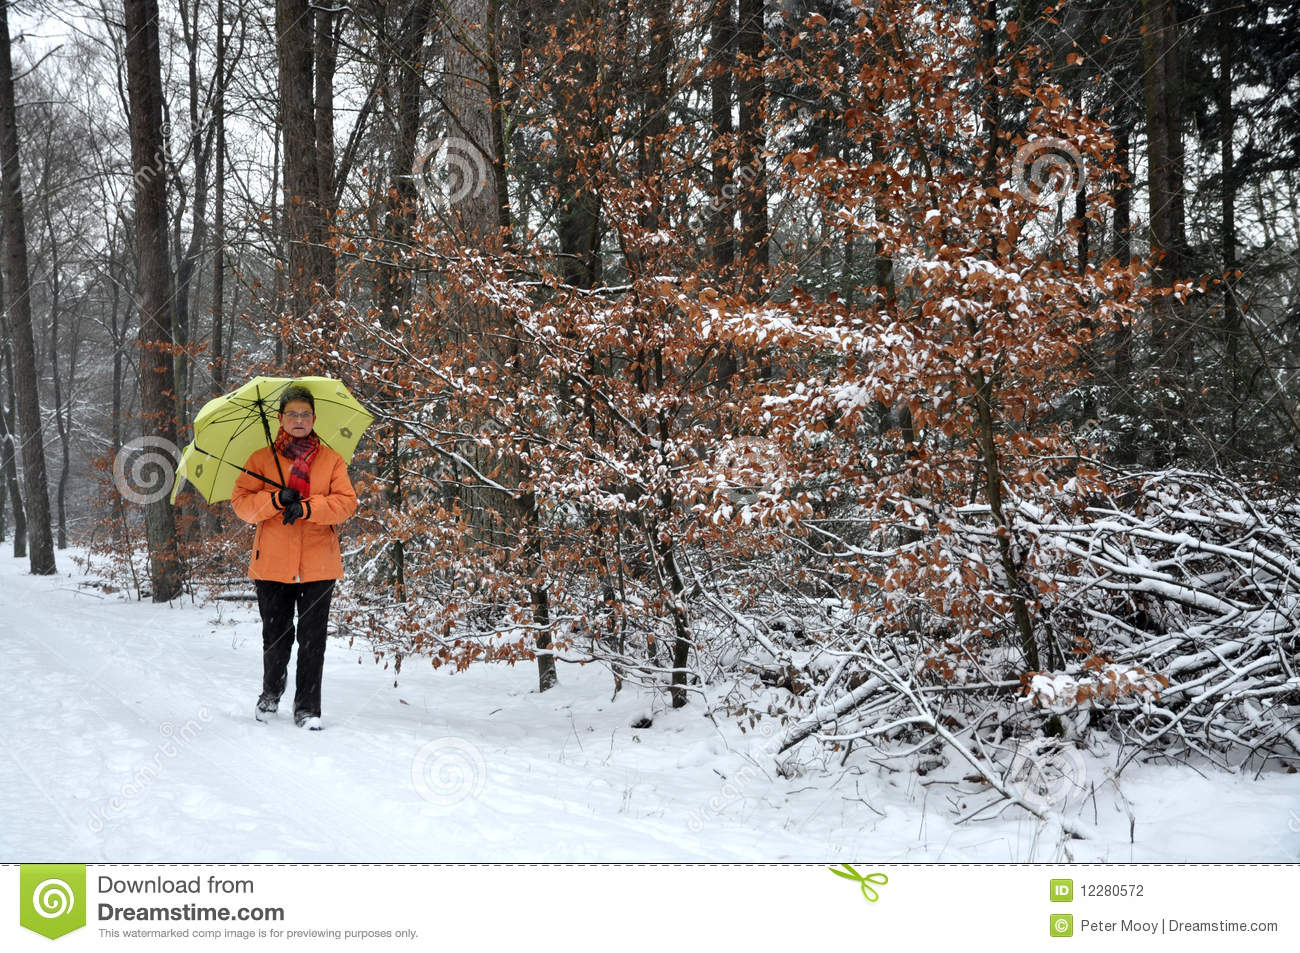 walking in the snow - photo #33